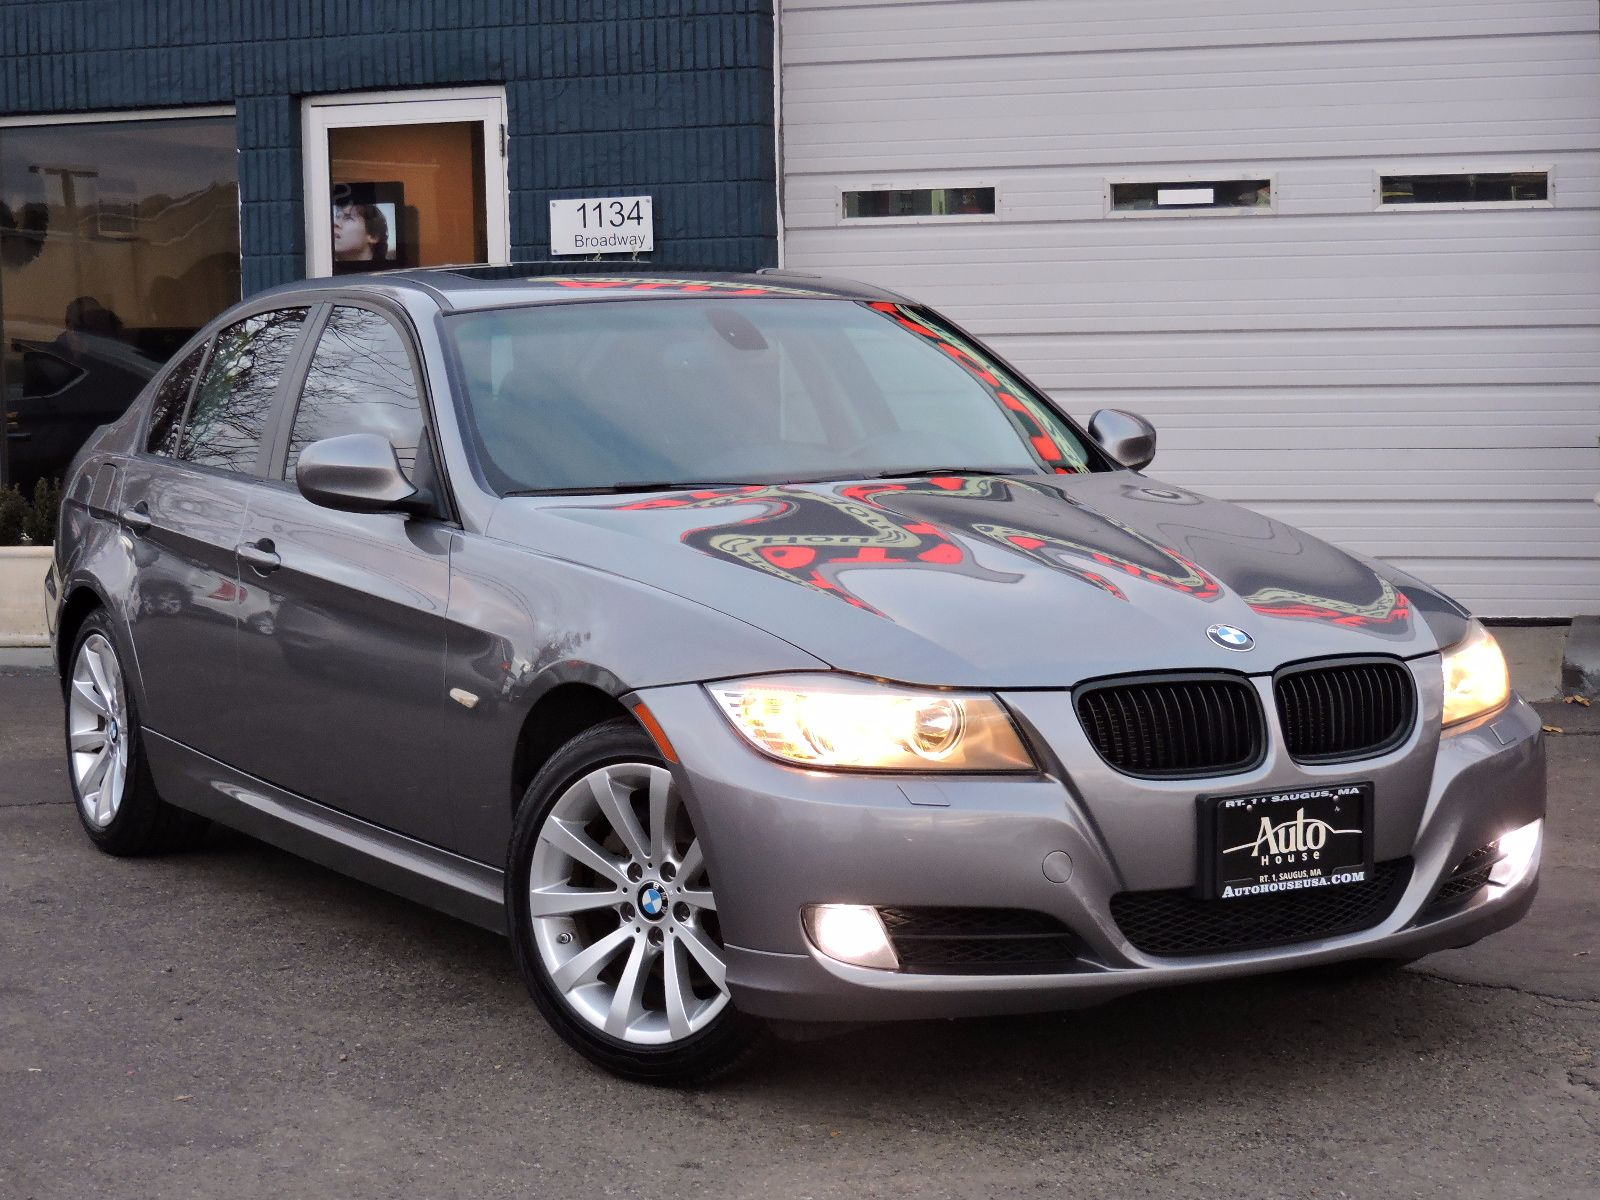 2011 BMW 328i xDrive xDive - All Wheel Drive - Navigation - 6 Speed